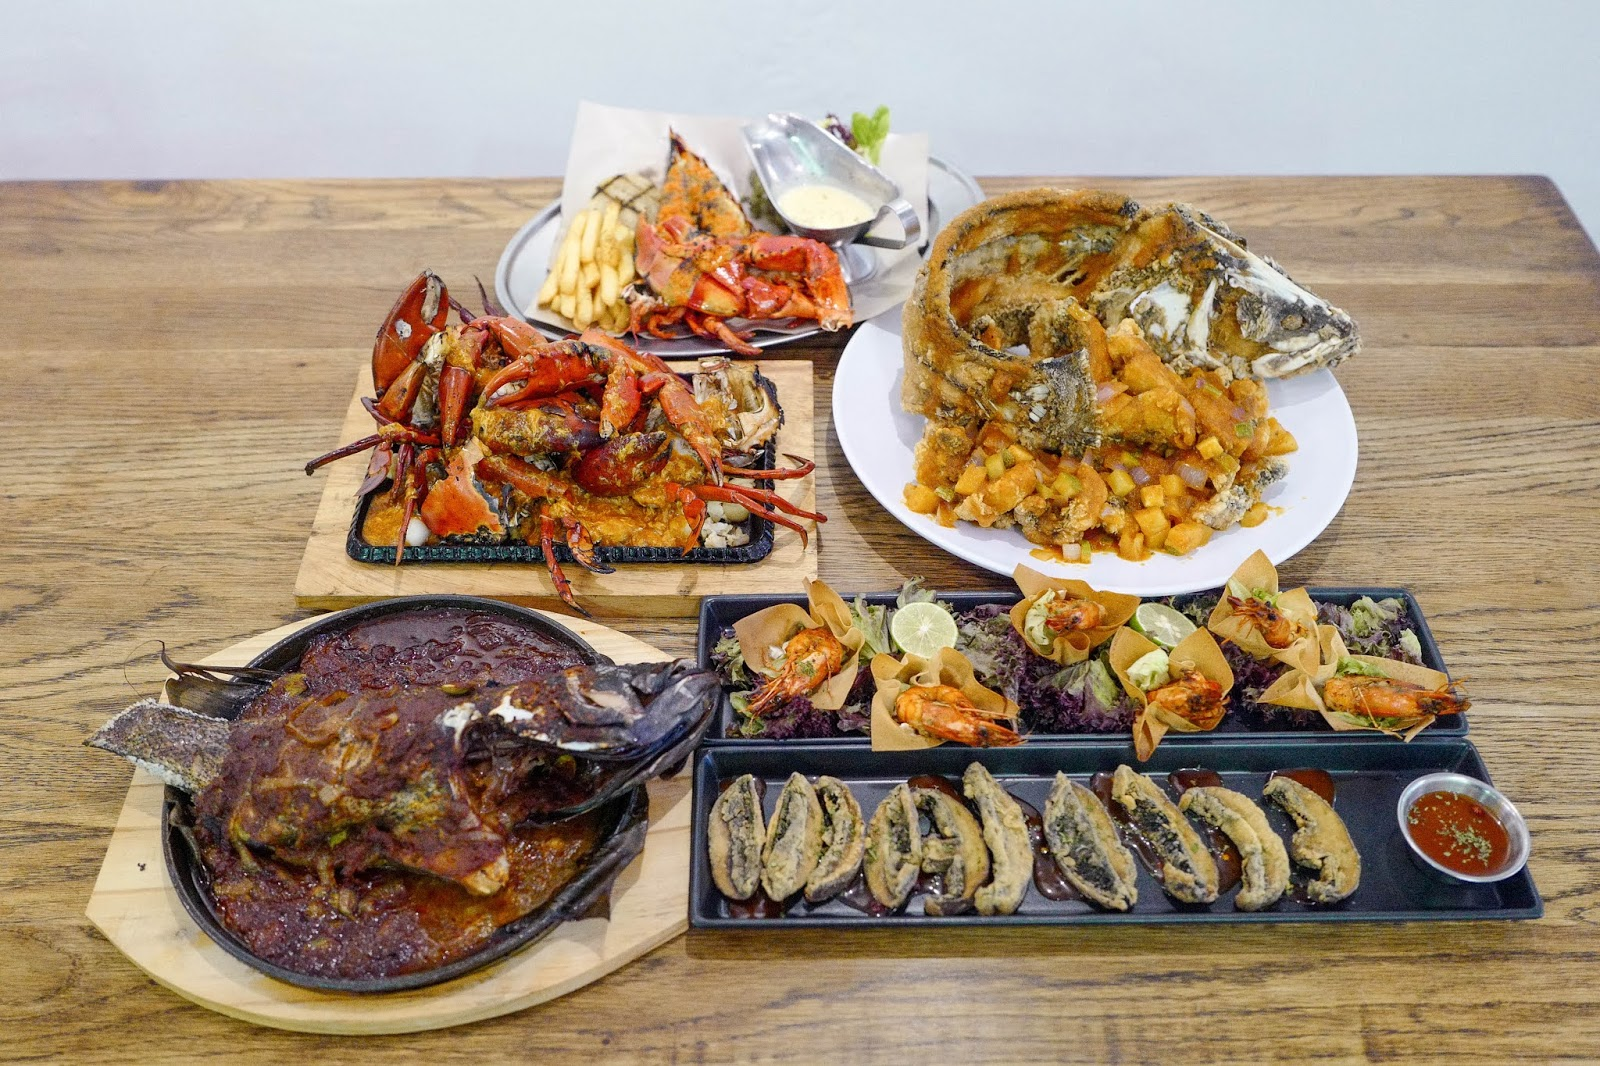 Rasa Gourmet with Steaks & Lobsters: Fresh-from-the-farm seafood in Desa Sri Hartamas